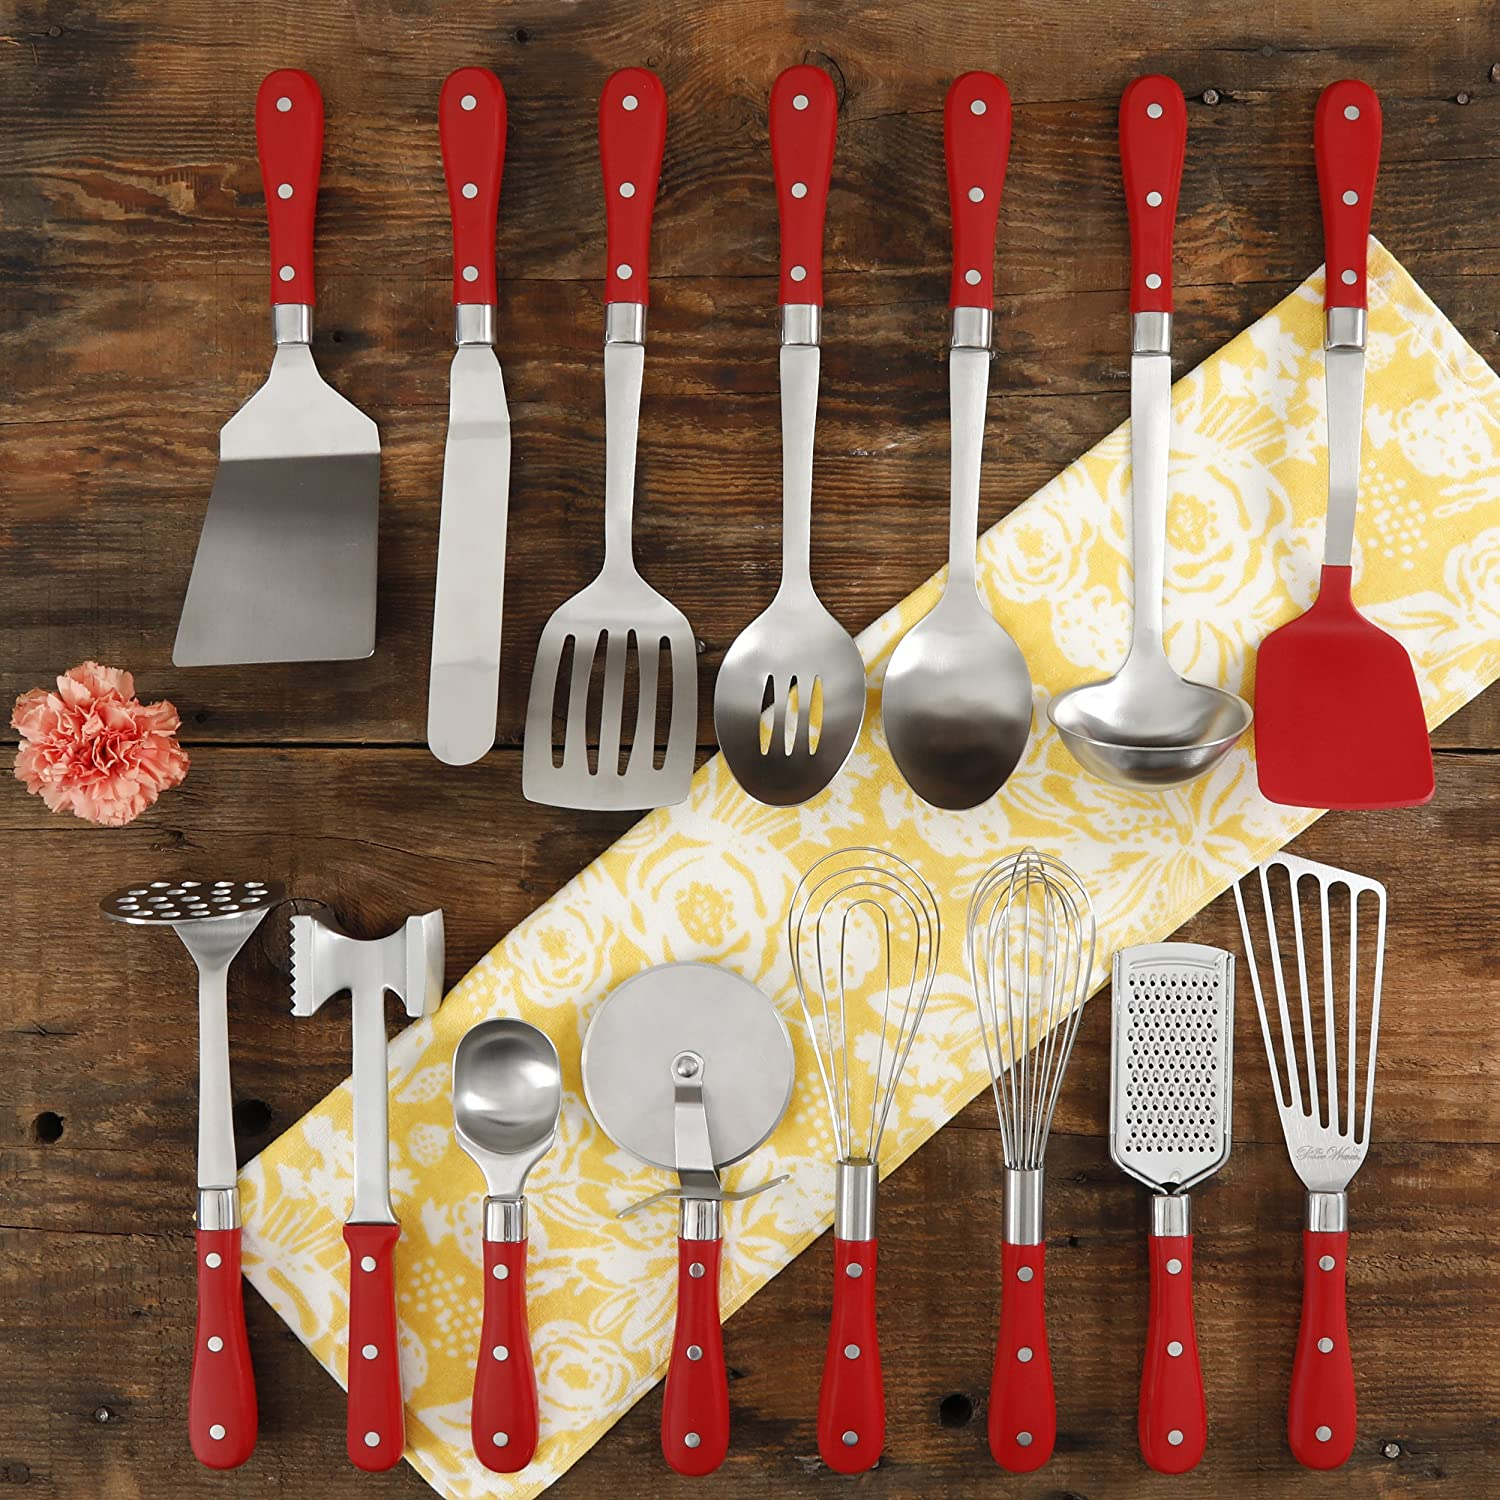 Frontier Collection 15-Piece All In One Tool And Gadget Set In Red, Made of Stainless Steel, Nylon and Riveted ABS Handles, Dishwasher Safe